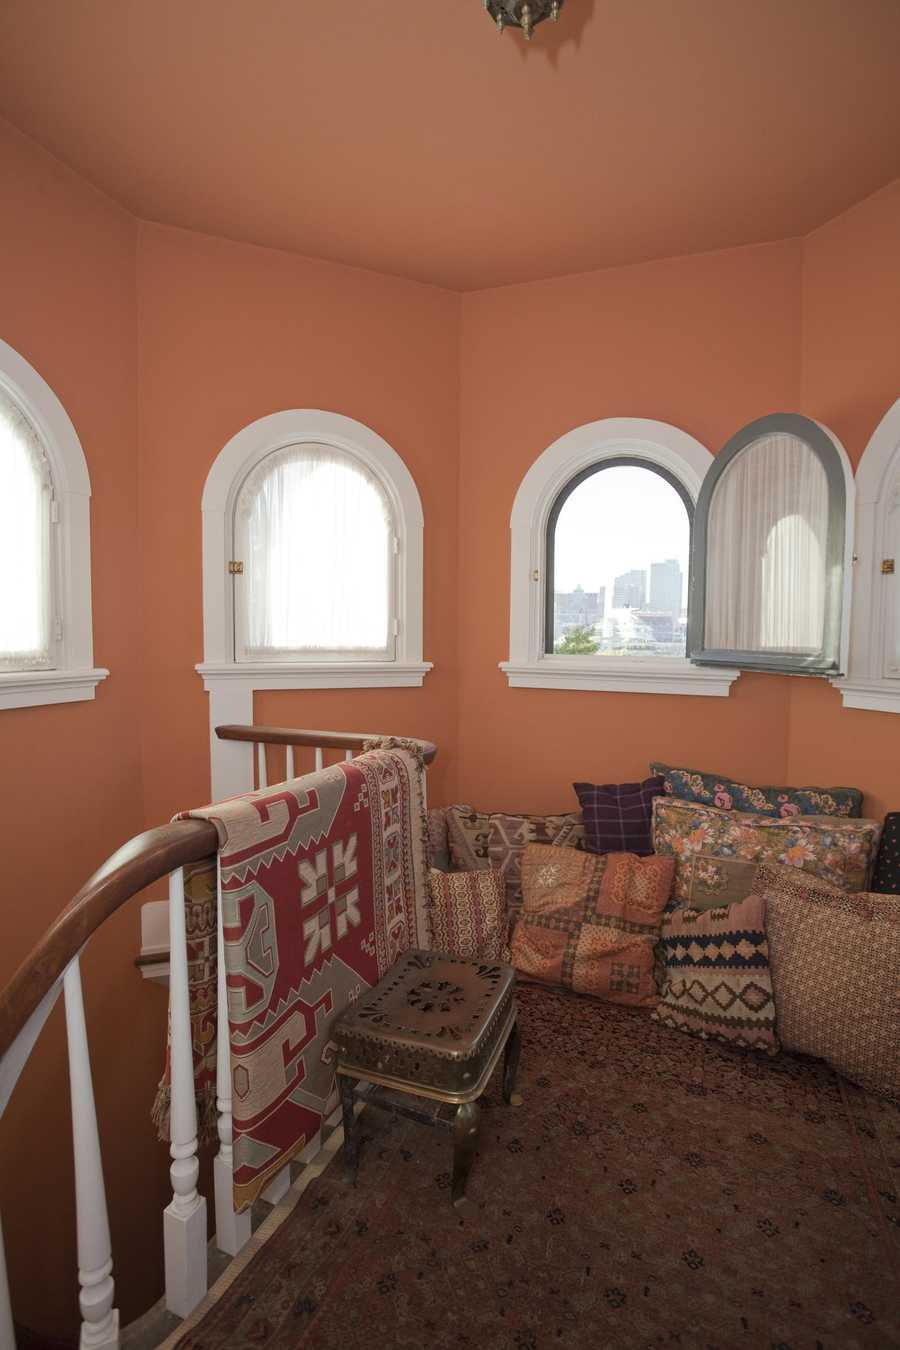 Third Floor, Staircase To Cupola